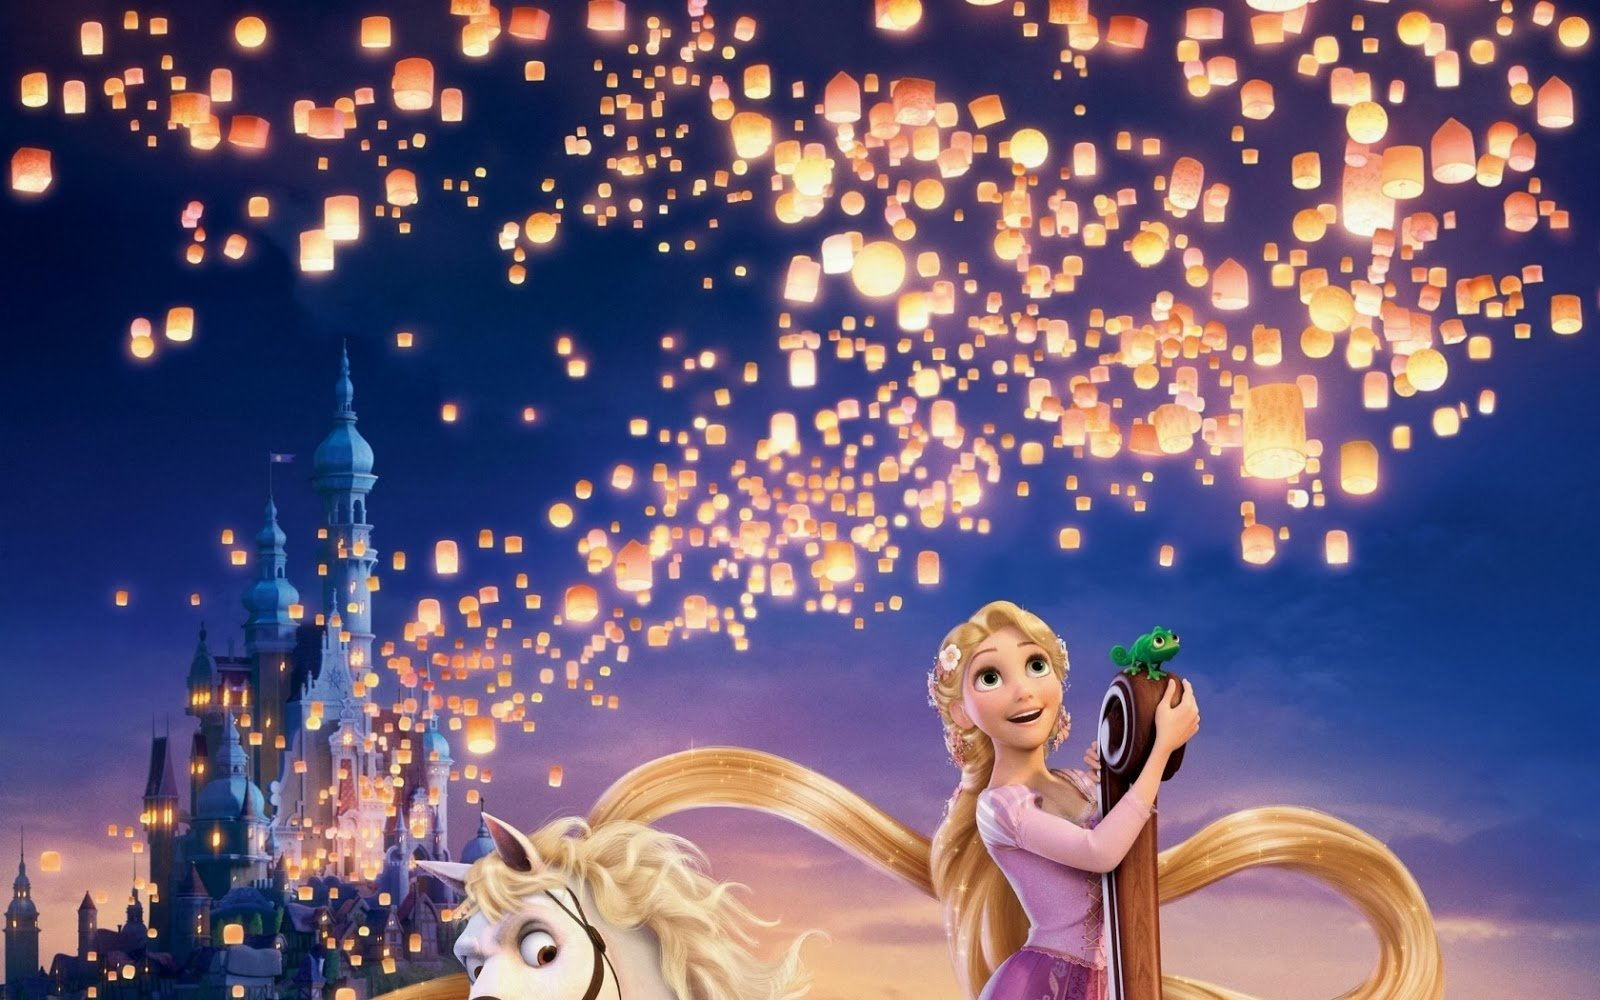 42 Rapunzel Wallpaper Hd On Wallpapersafari